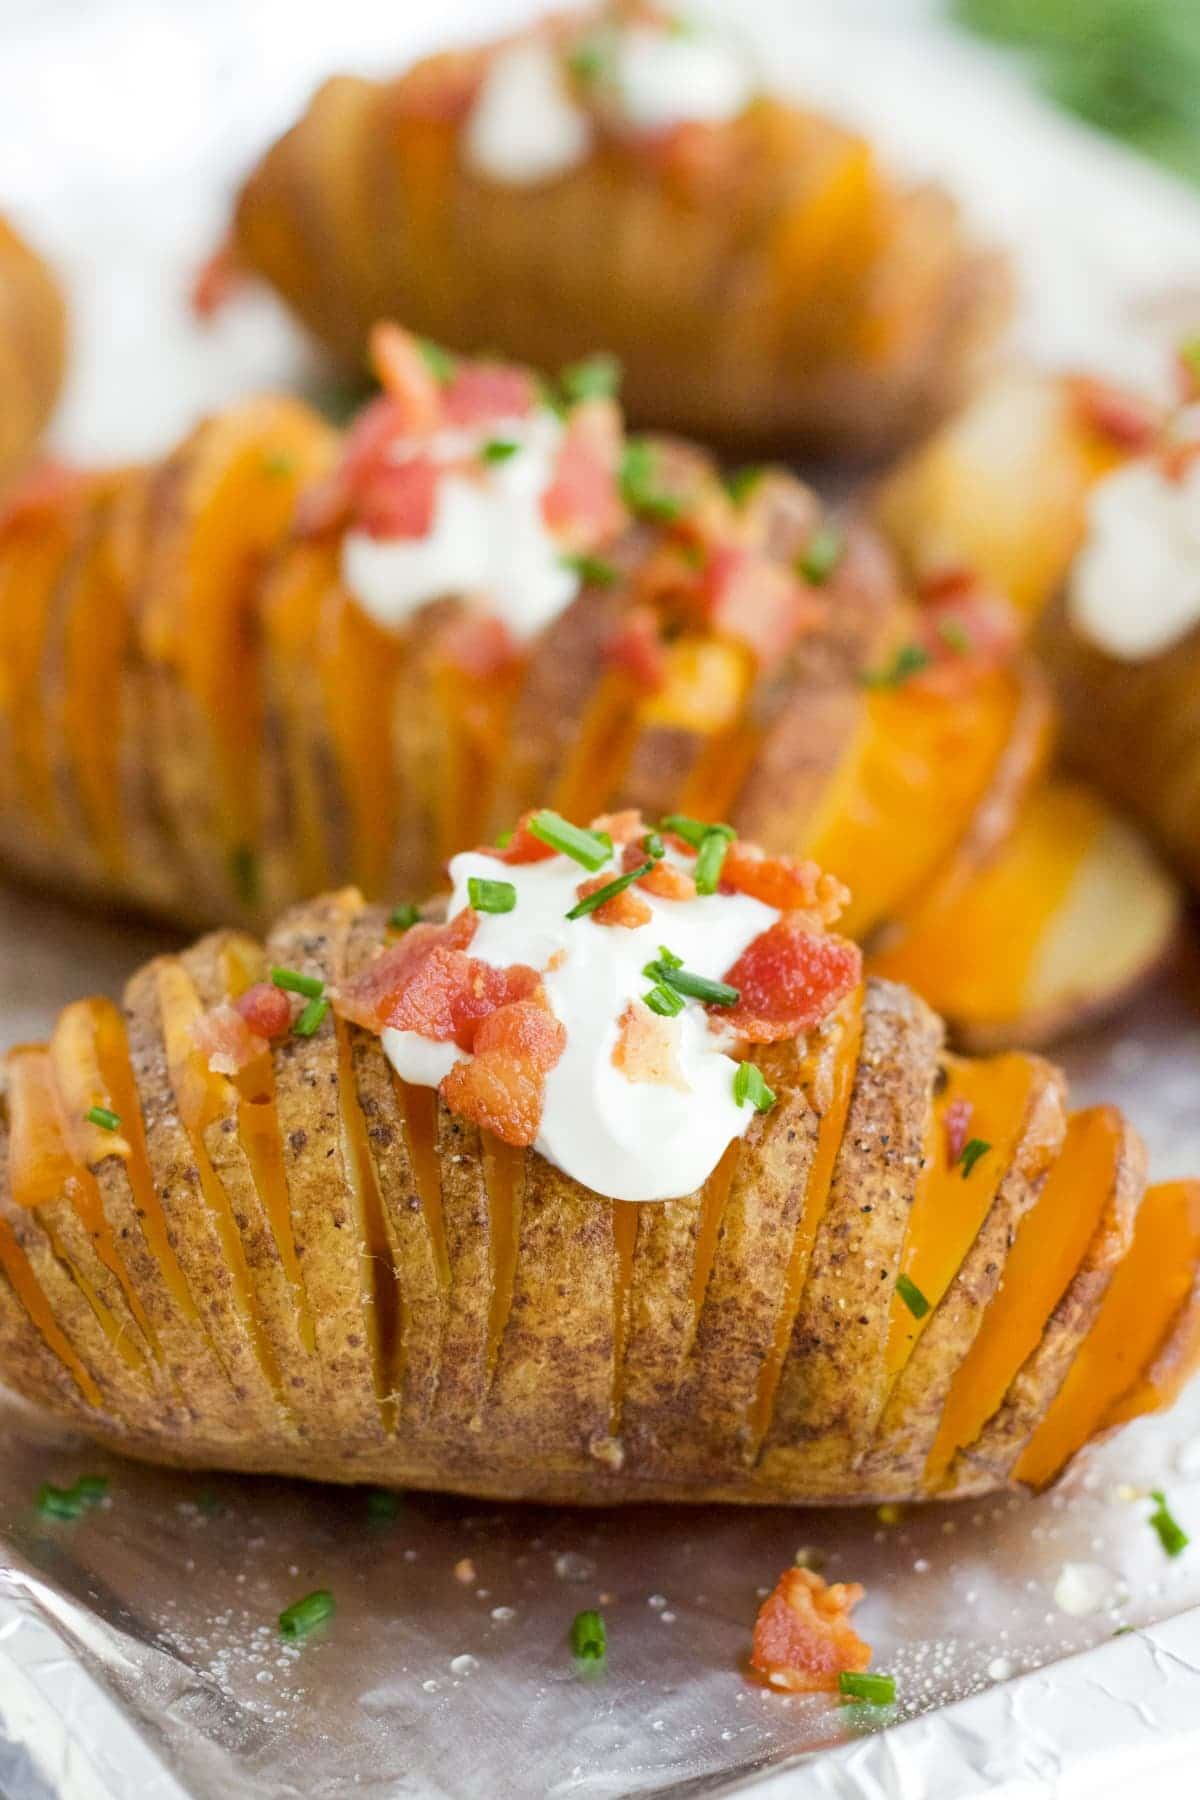 A close up image of a Hasselback potato with sour cream, bacon and chives.